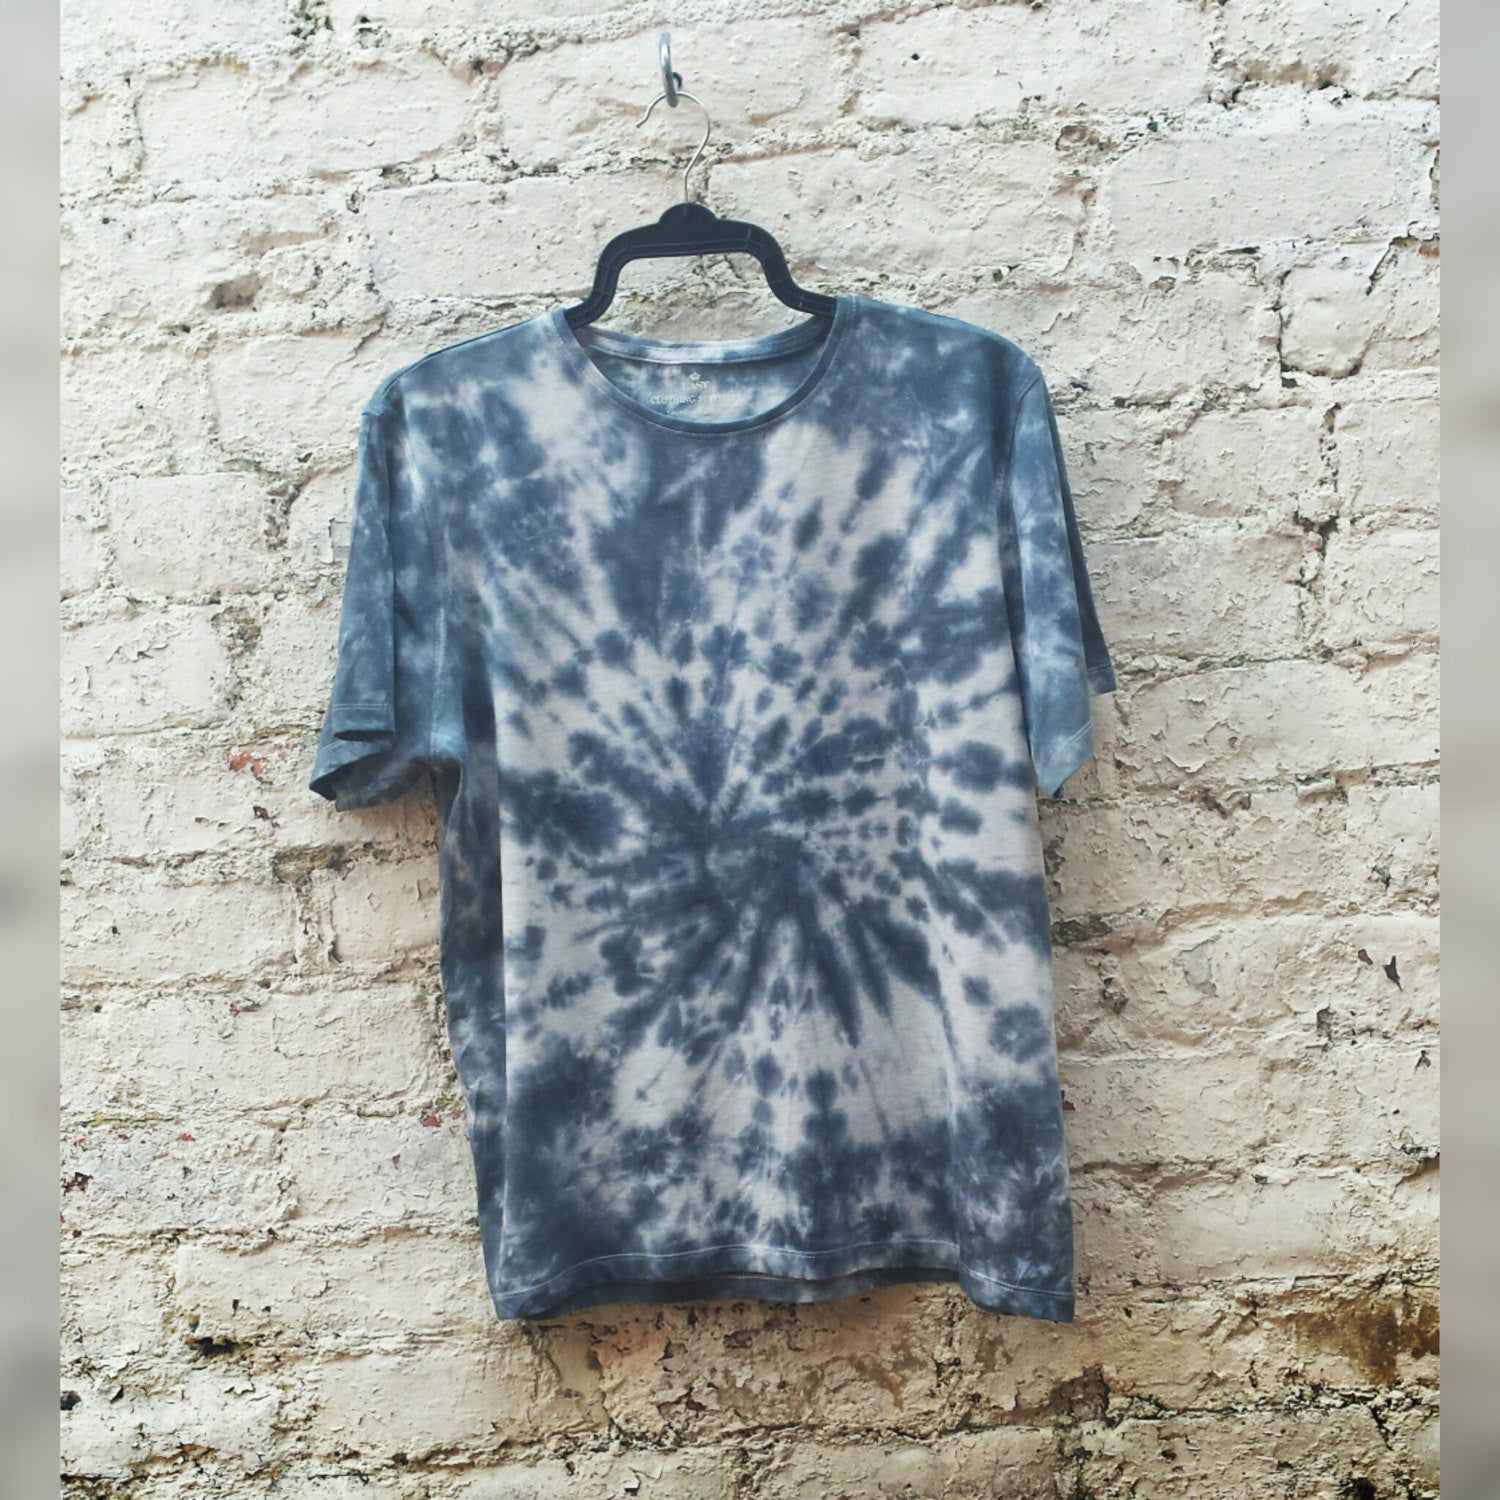 Black Tie Dye Shirt Men's Organic Cotton